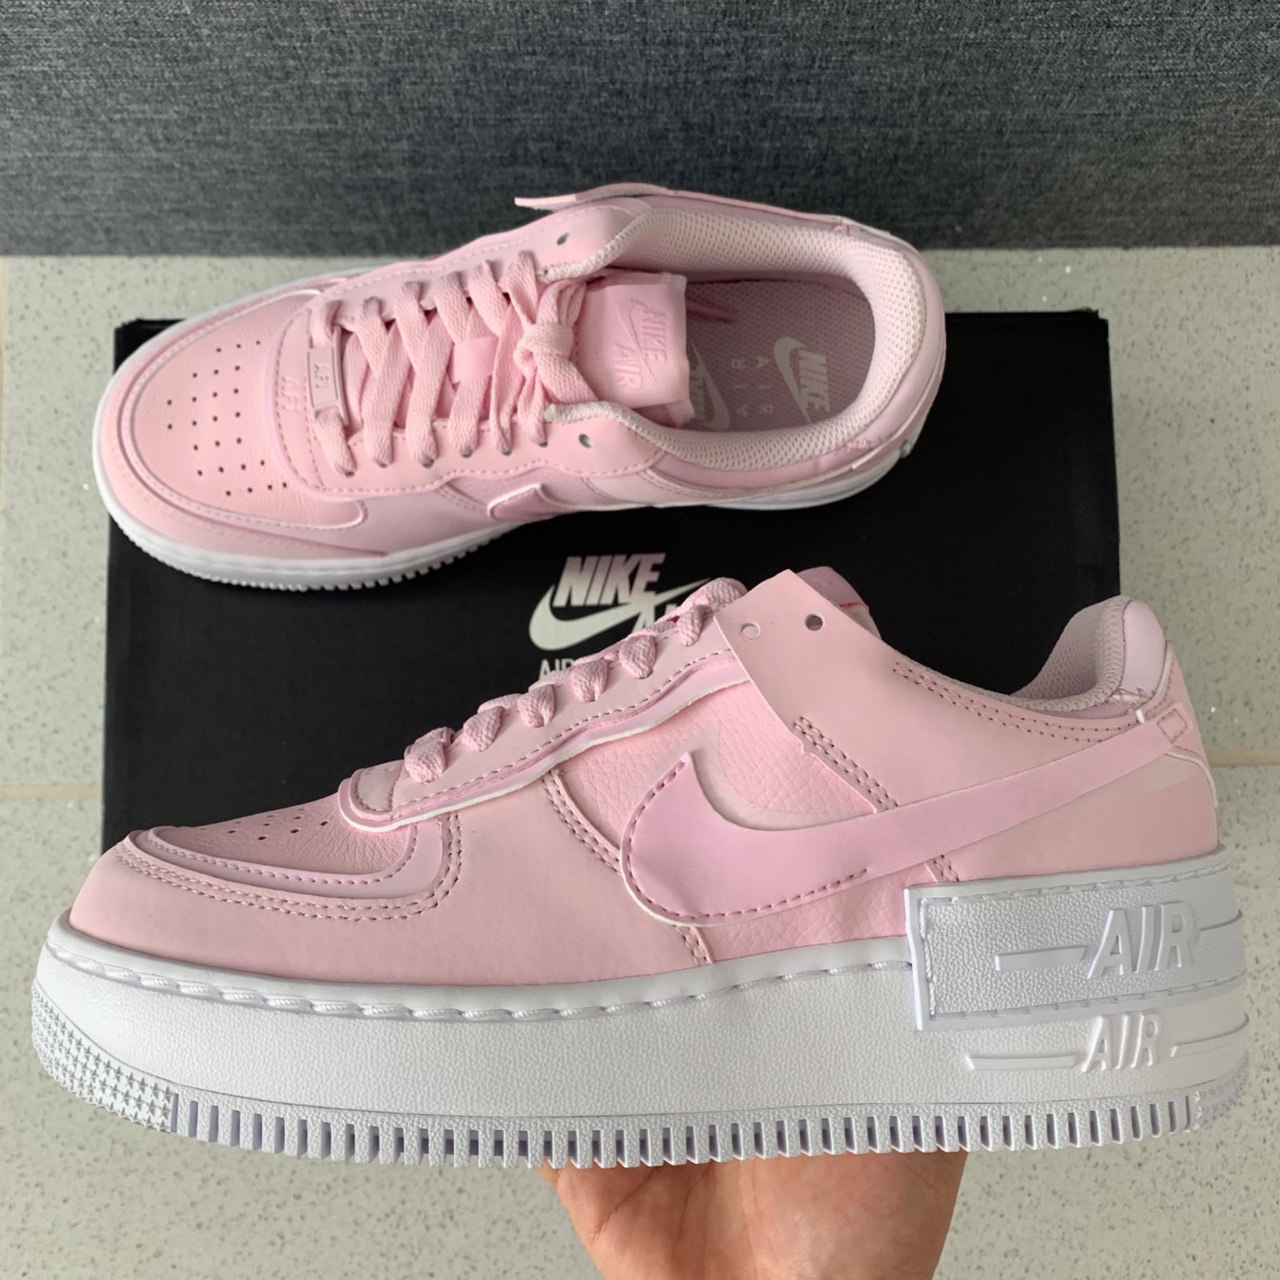 Wmns Nike Air Force 1 Shadow Pink Foam Pink Foam Depop